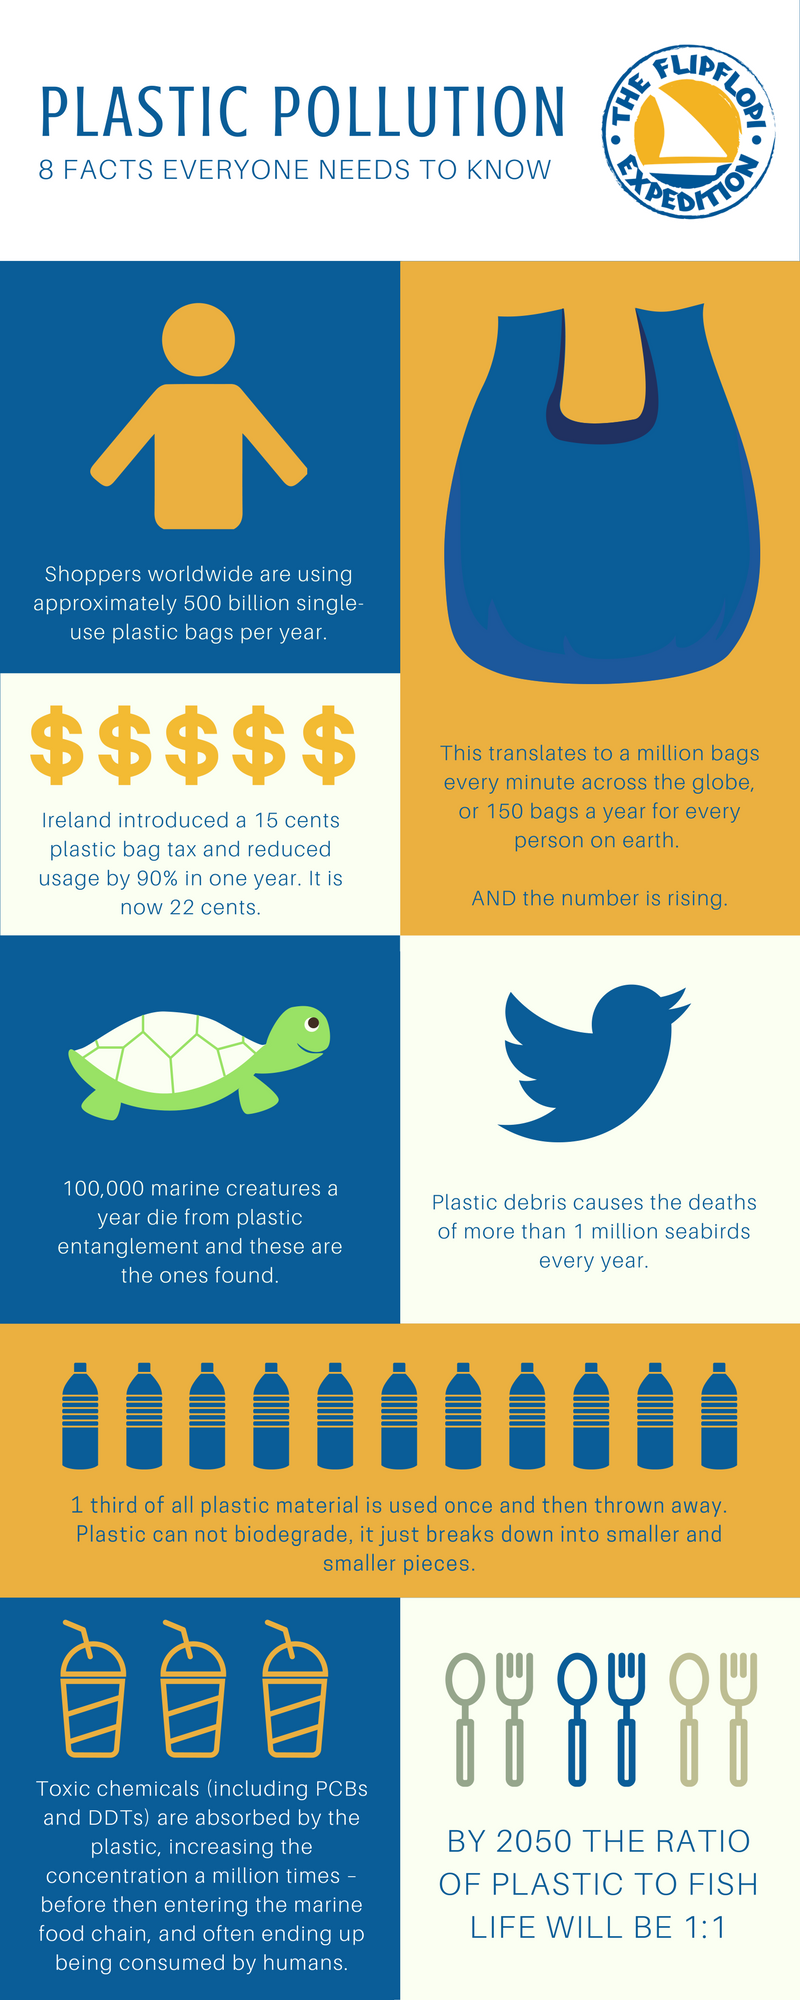 52784-8factsonplasticpollution8factsonplasticpollution.png